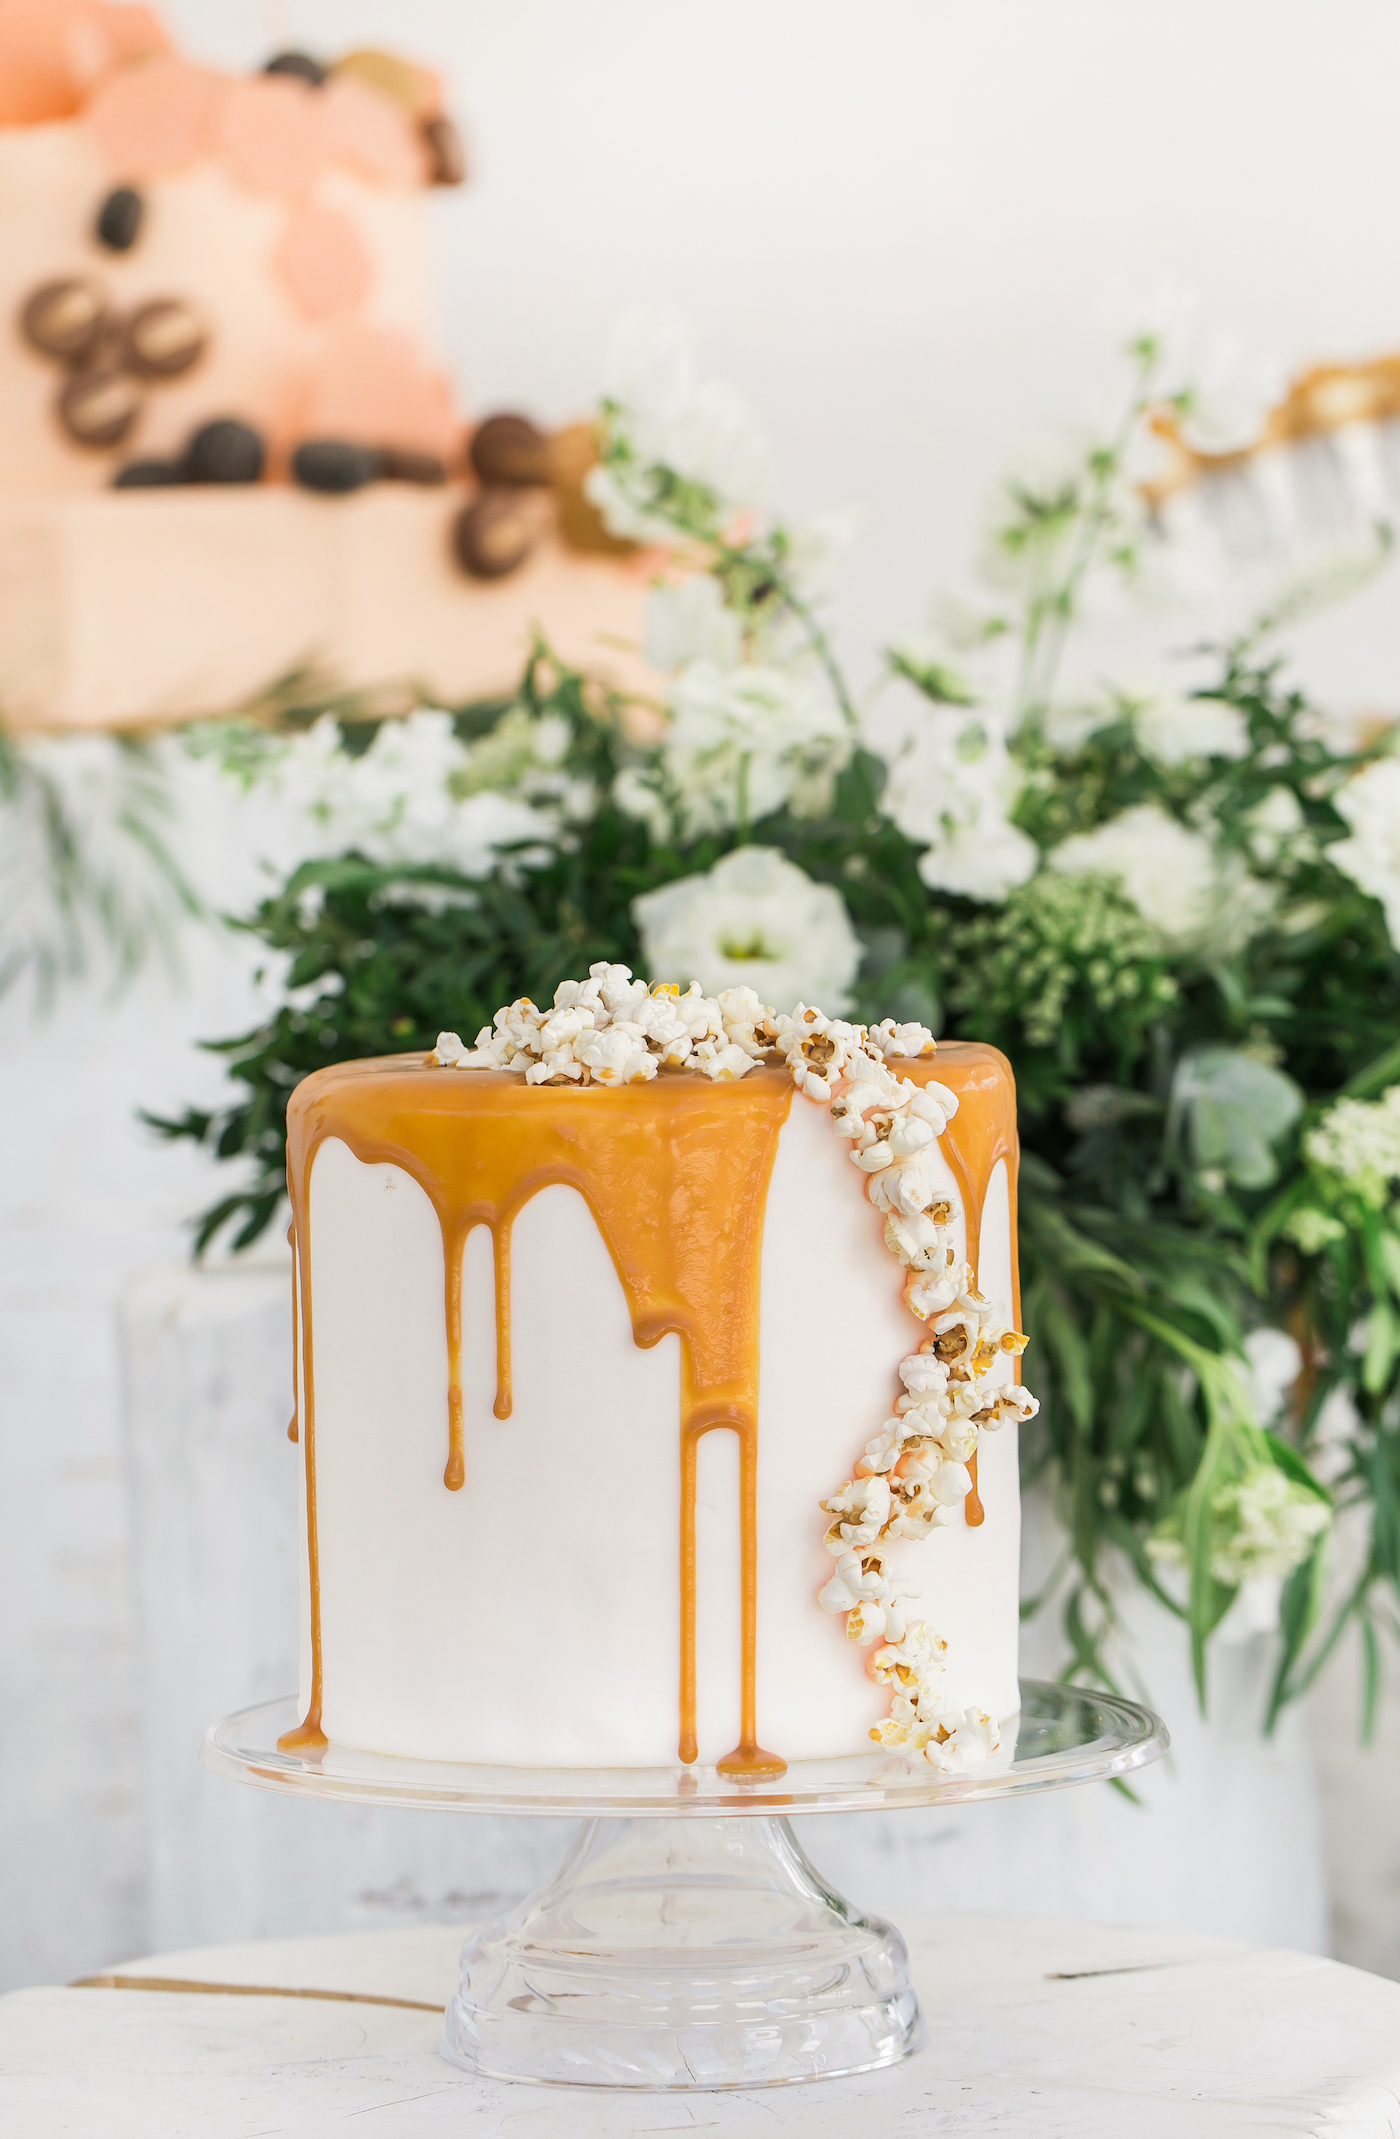 Popcorn cake styled by international wedding planner Elisabetta White